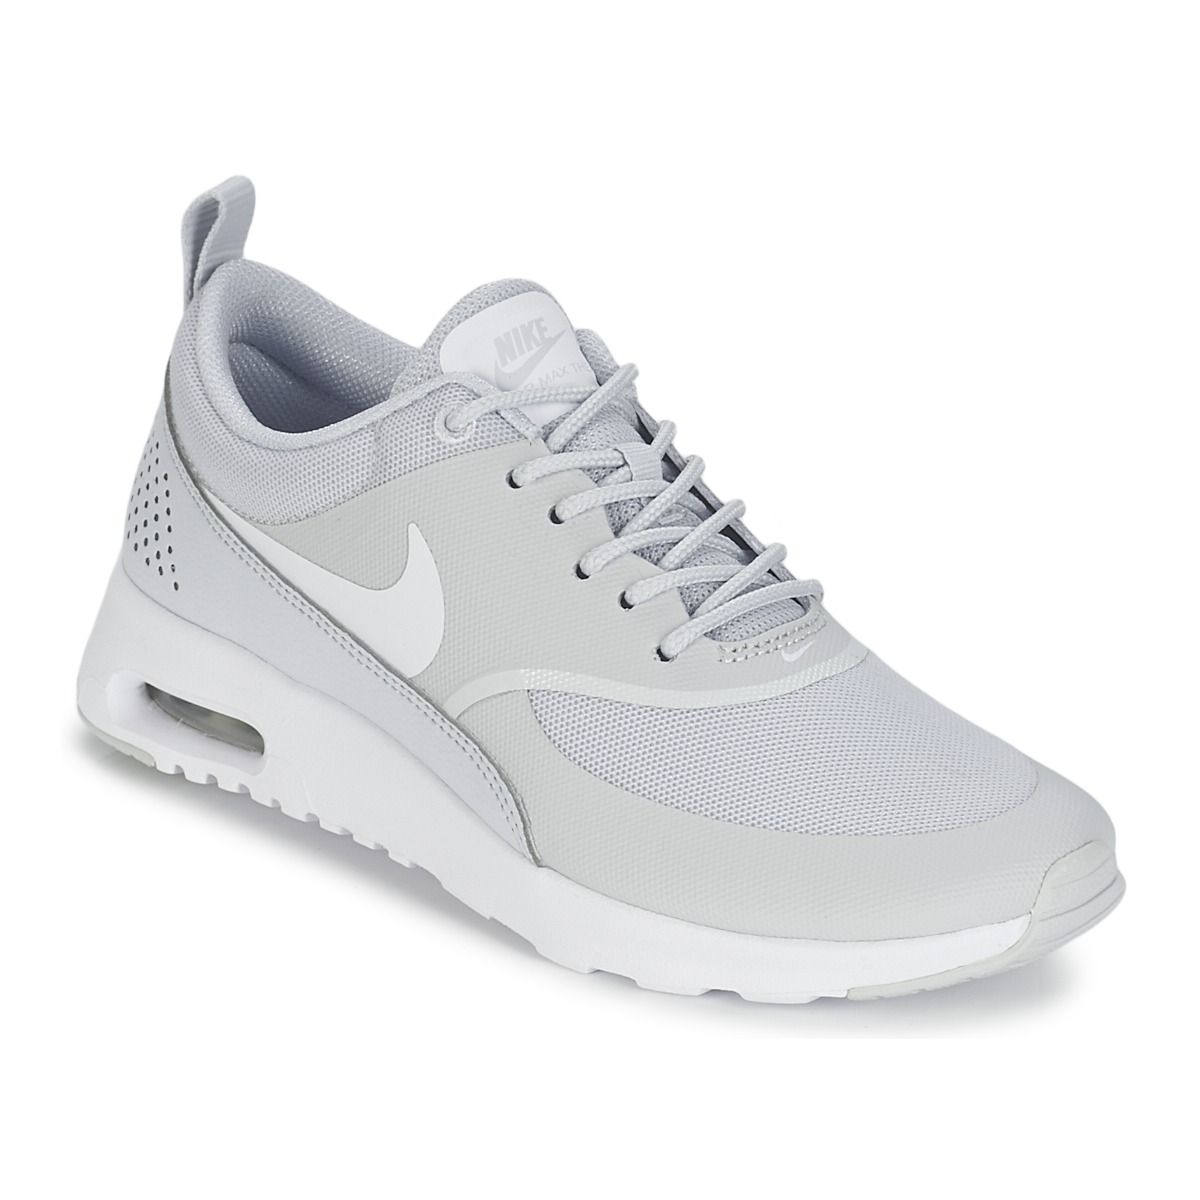 wholesale dealer fe2c5 095a6 Baskets basses Nike AIR MAX THEA W Gris prix promo Baskets Femme Spartoo  119.00 €